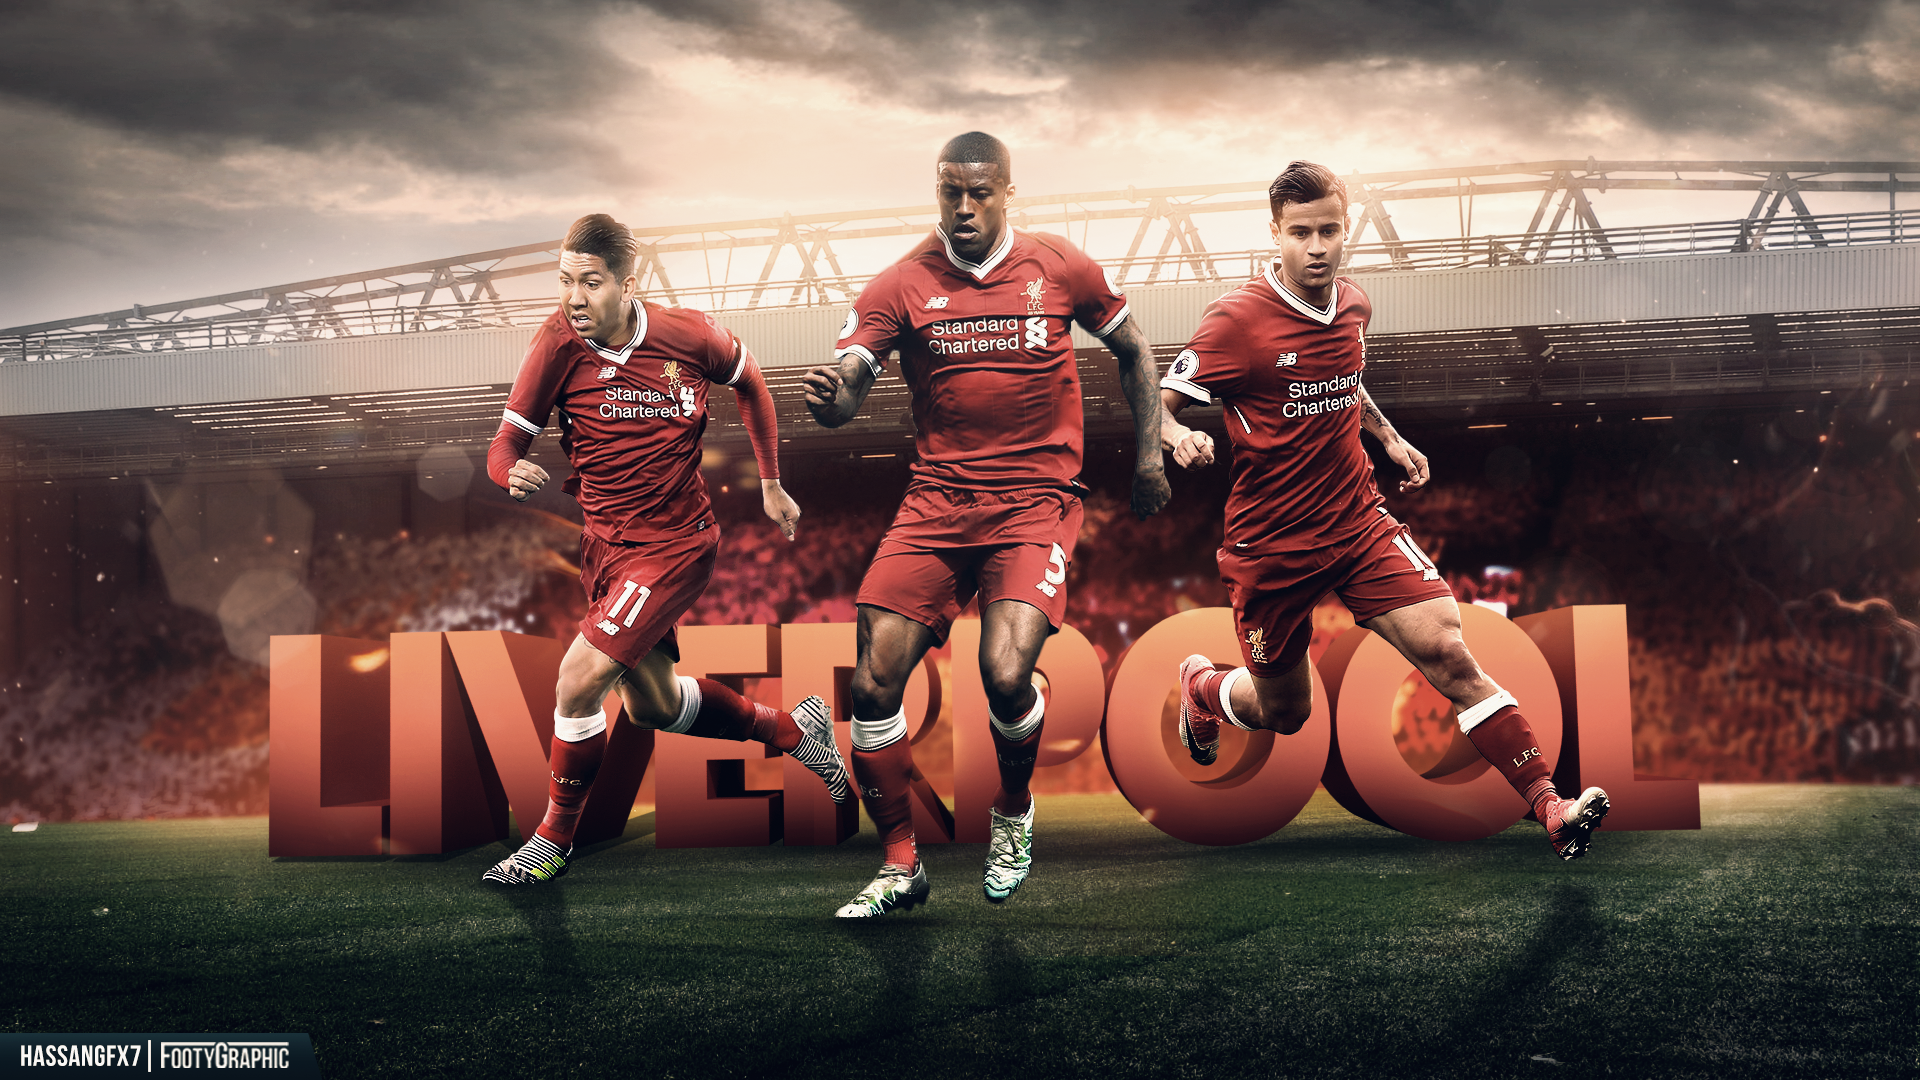 Liverpool Players Wallpapers Top Free Liverpool Players Backgrounds Wallpaperaccess